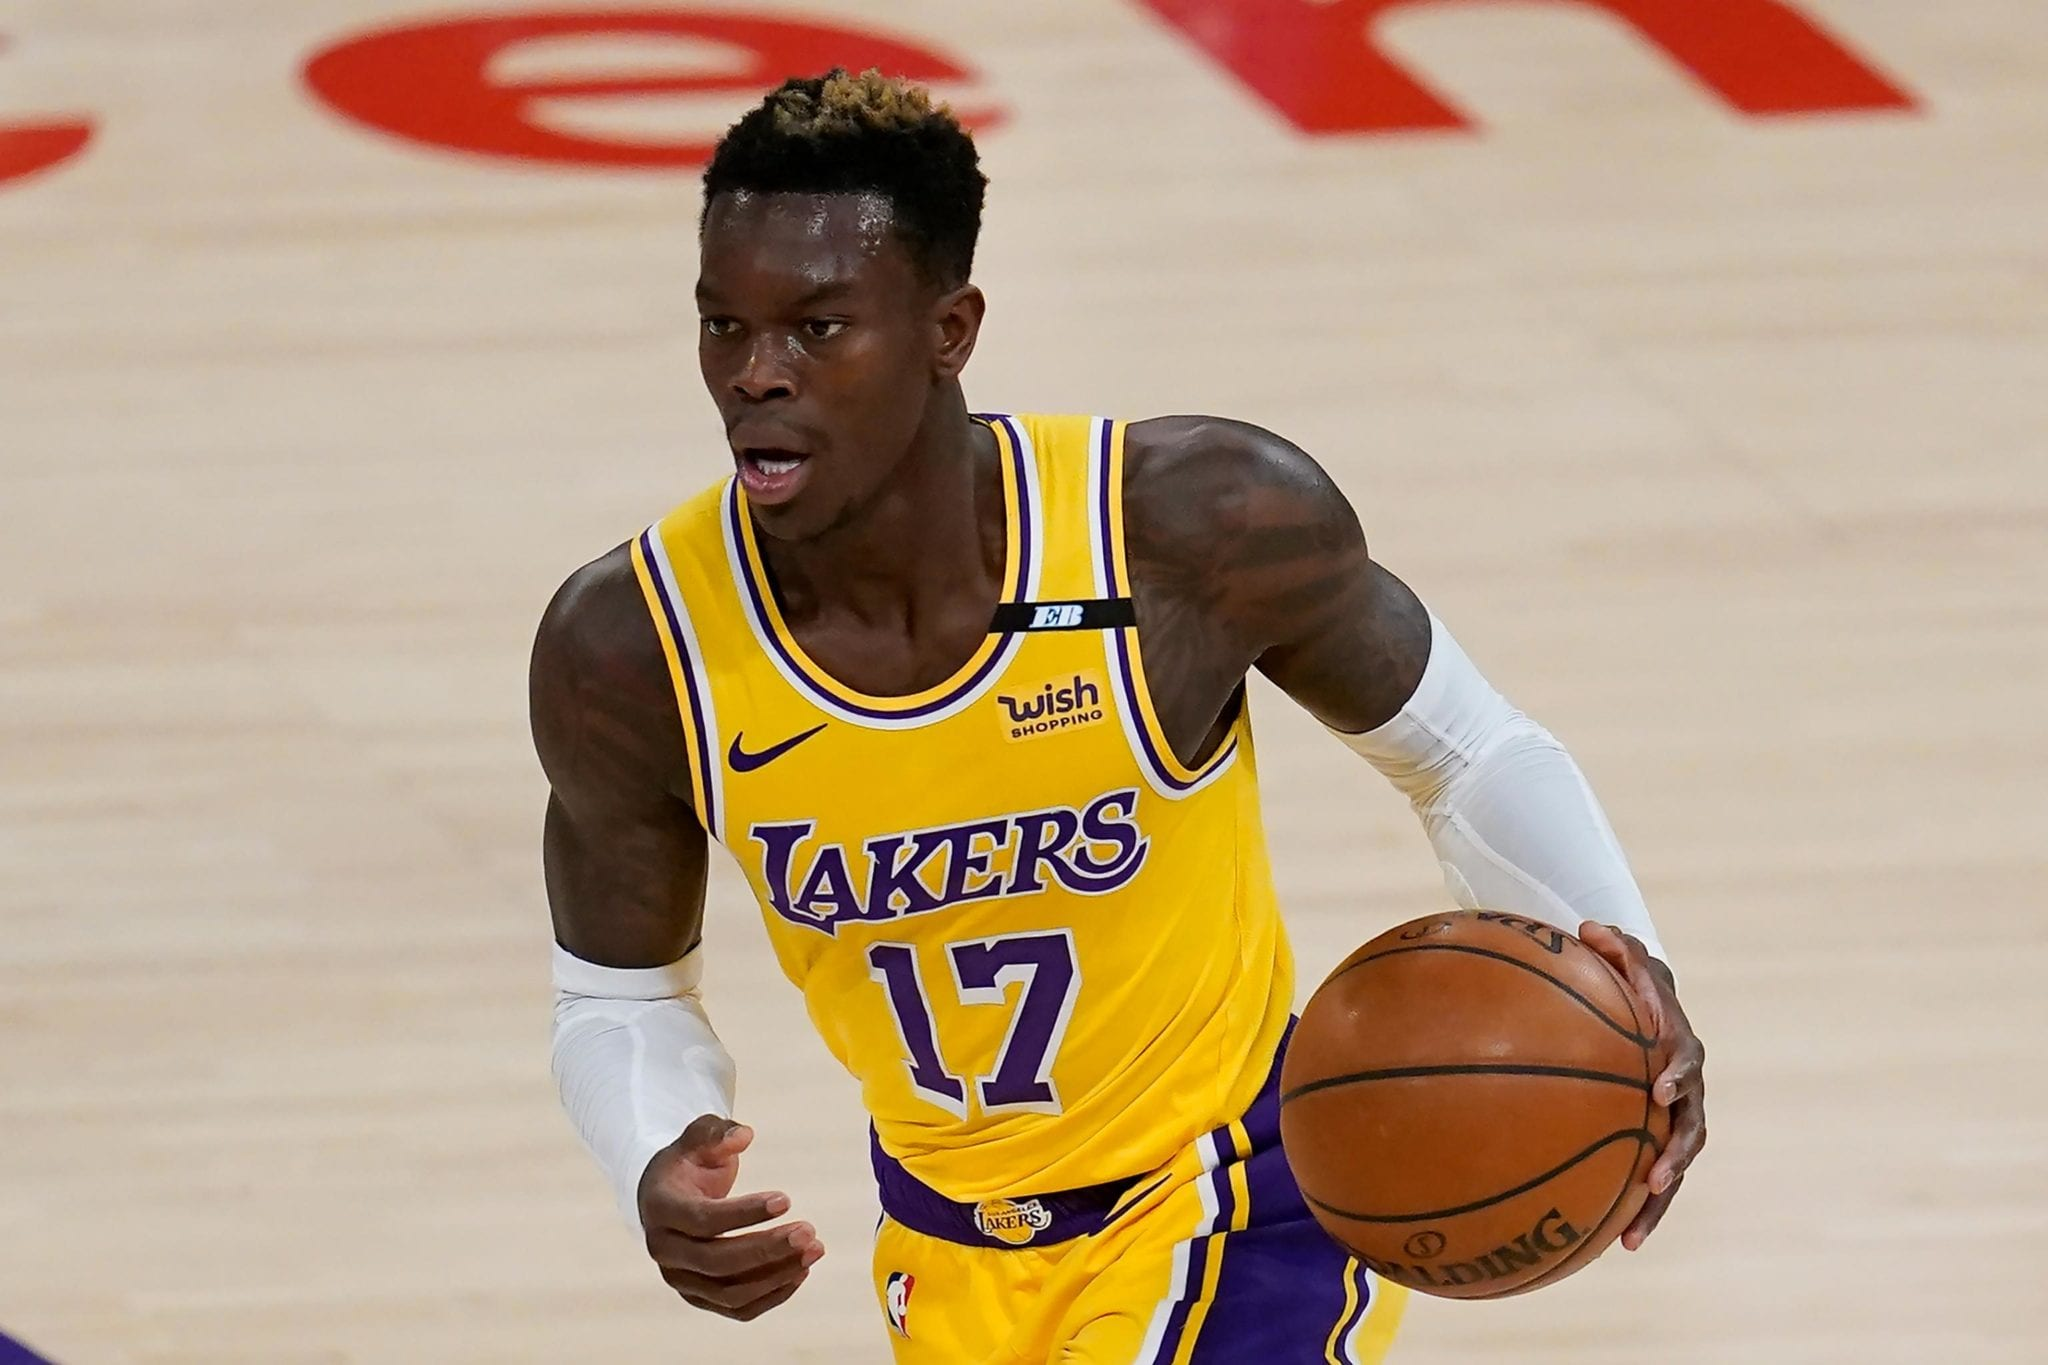 Slumping Lakers Lose Dennis Schroder to Health and Safety Protocols for 10-14 Days